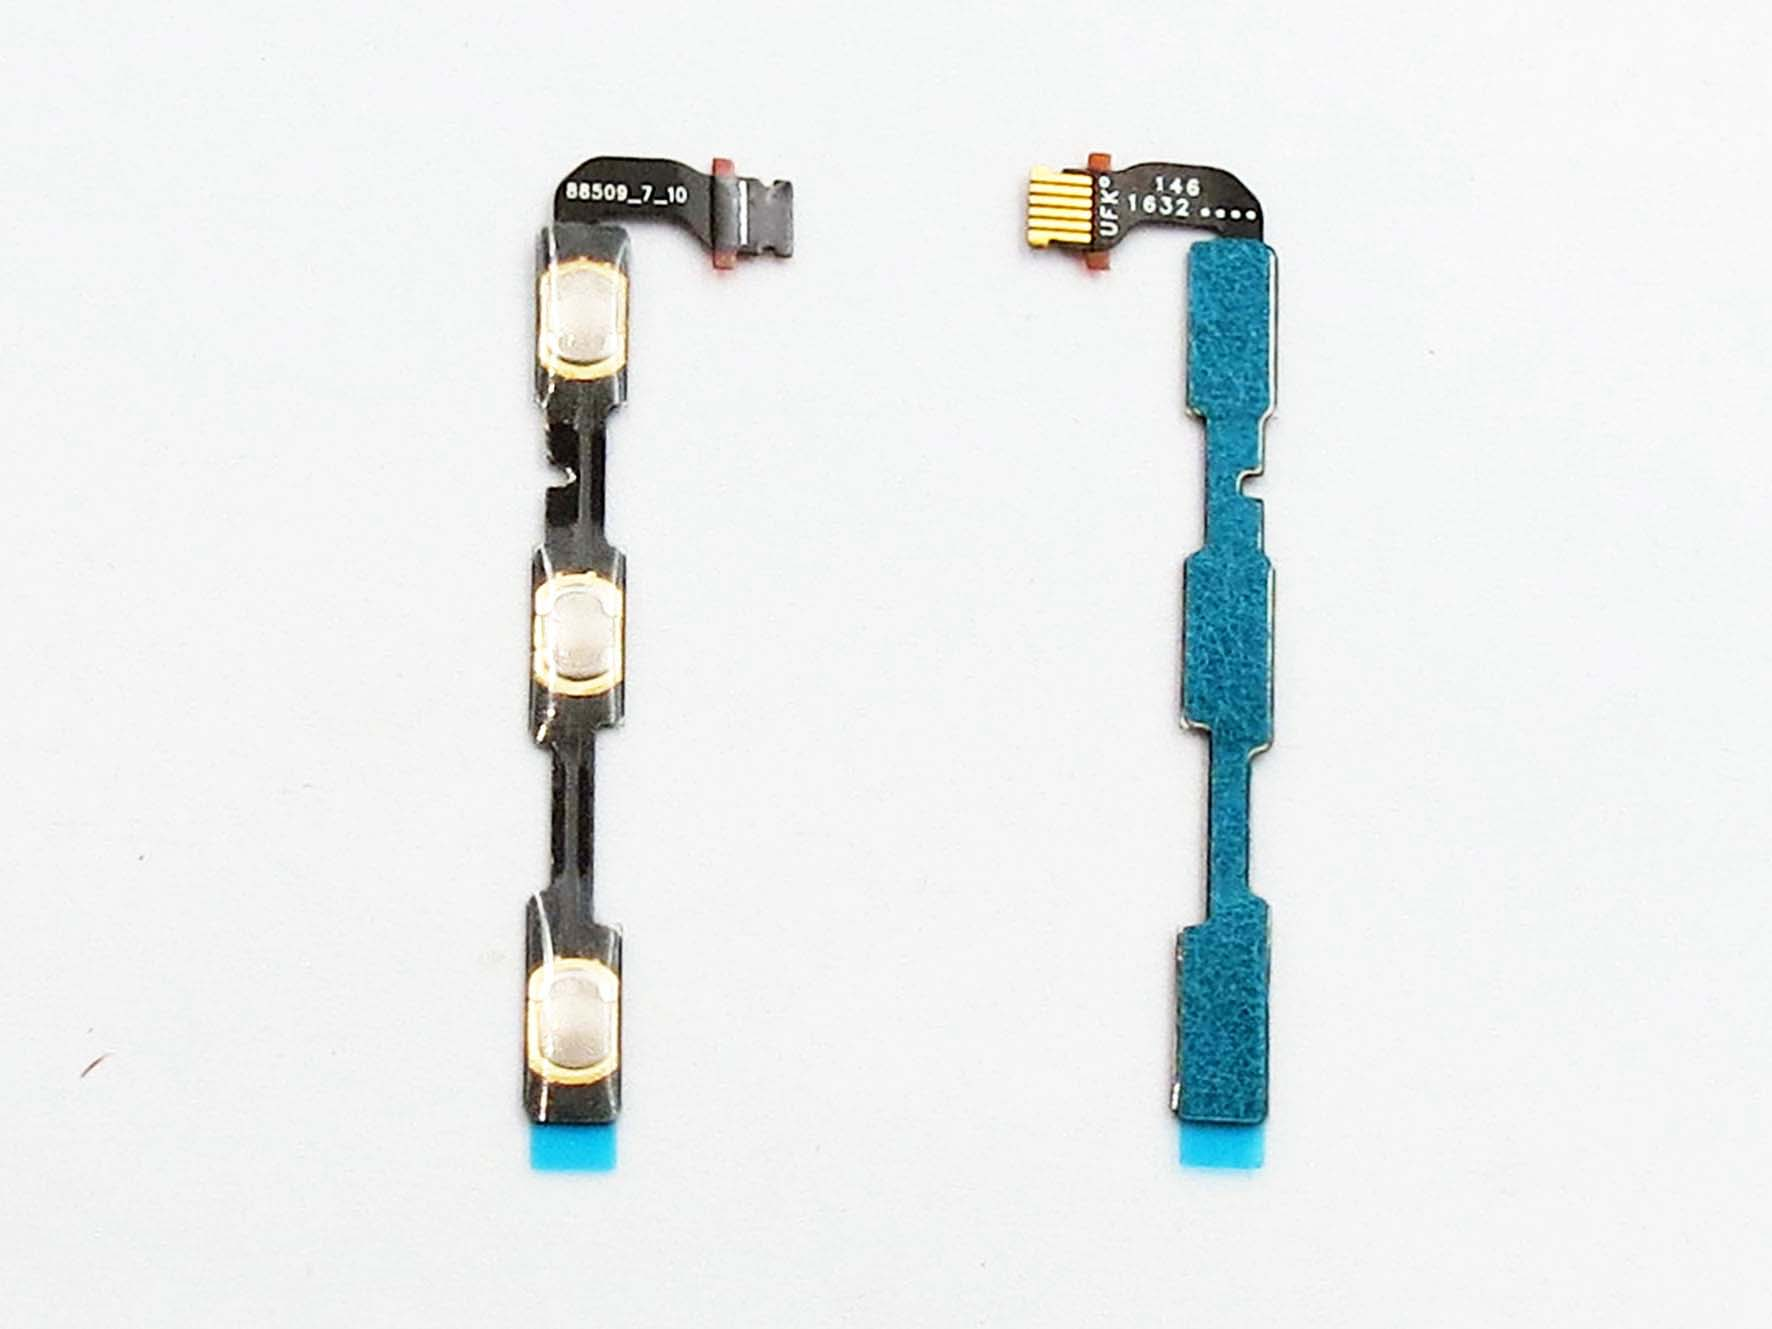 Power On/Off + Volume Up/Down button Flex Cable for Redmi 4x